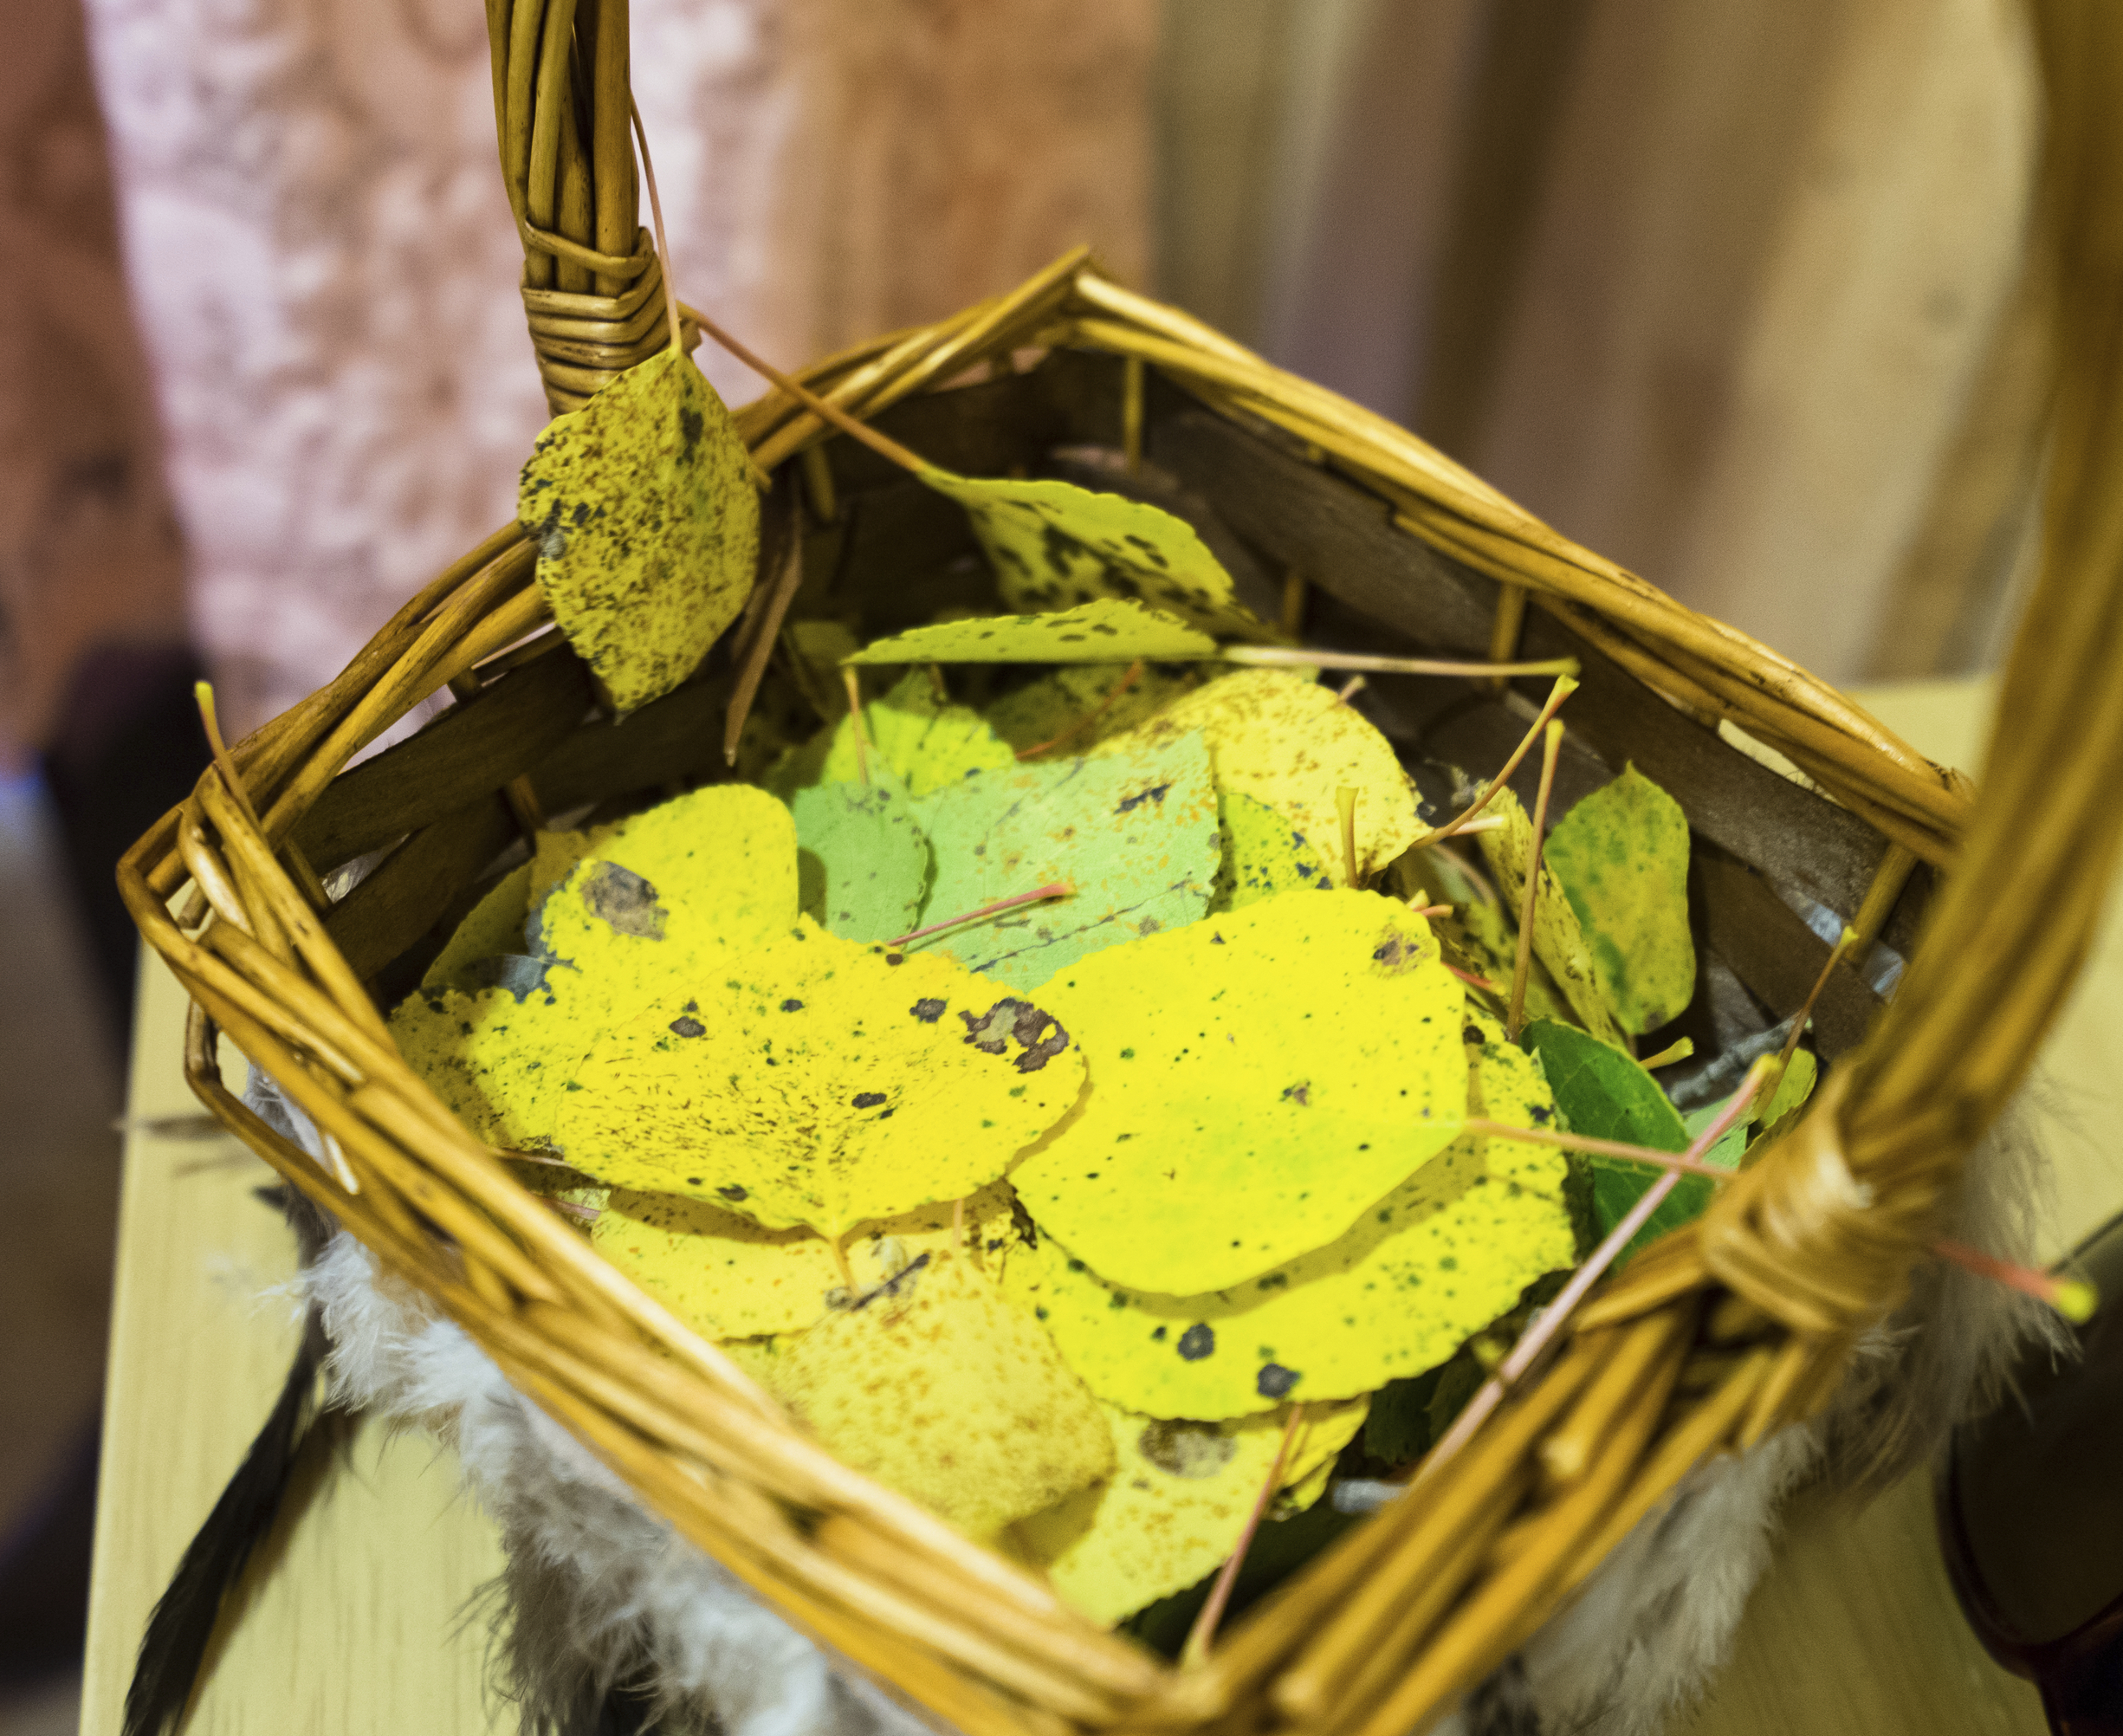 wedding send off ideas wedding send off ideas Consider having a basket full at the end of each row of seats with one person in charge of holding it while other guests take handfuls from the basket and